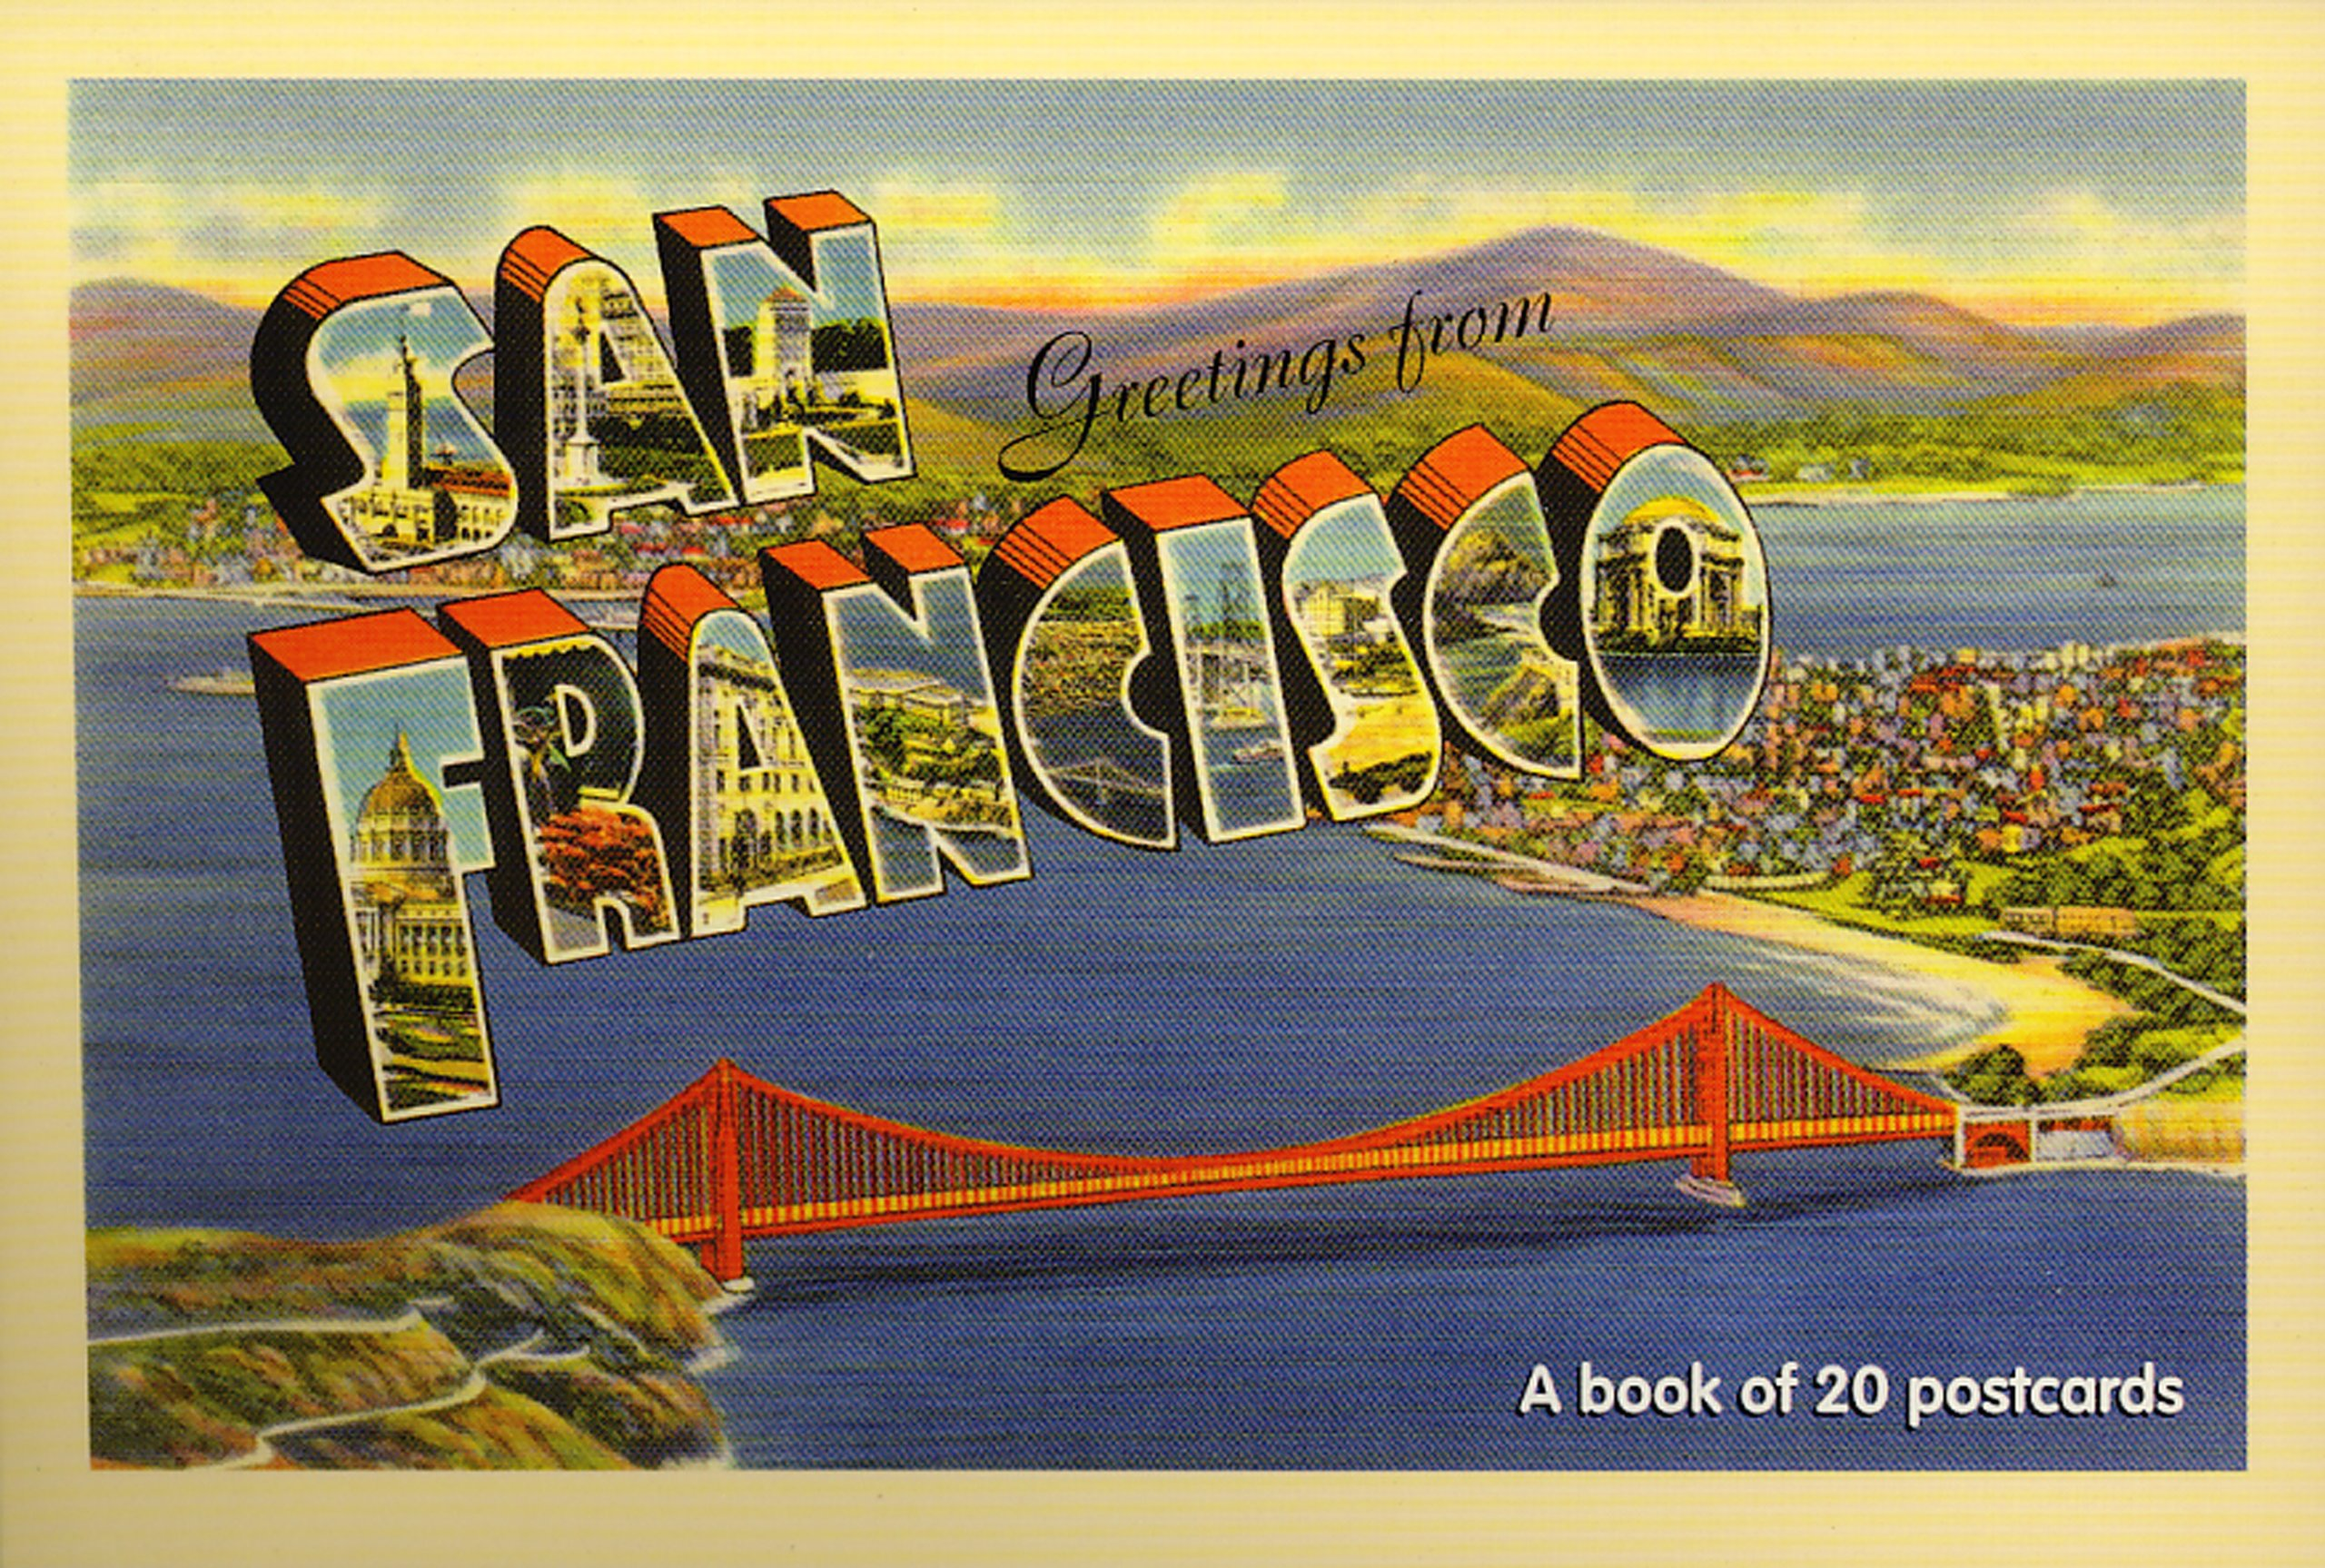 Buy greetings from san francisco a postcard book book online at low buy greetings from san francisco a postcard book book online at low prices in india greetings from san francisco a postcard book reviews ratings m4hsunfo